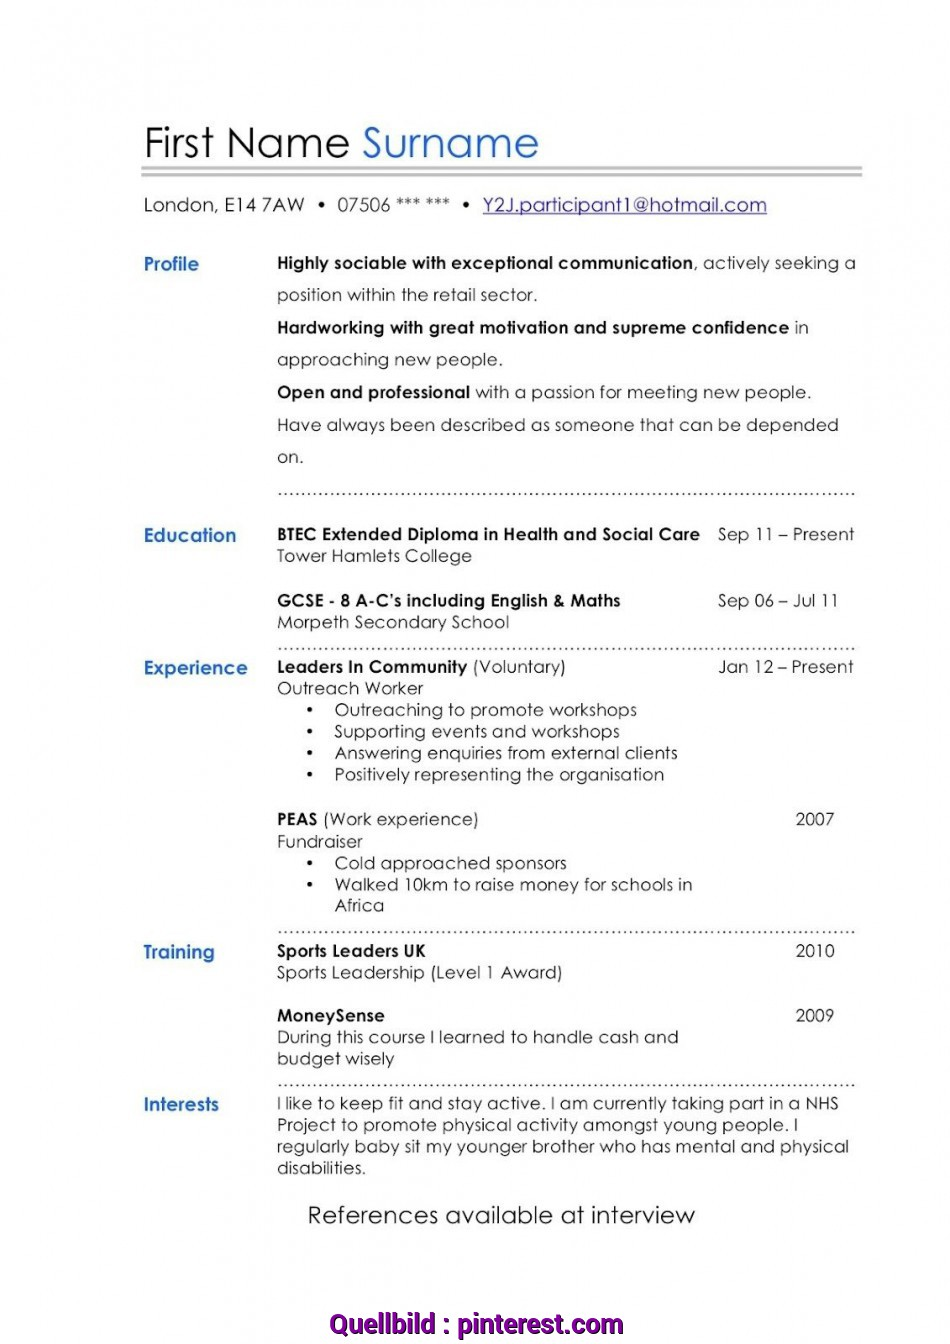 Trending Cv Template Young Person , #CvTemplate #Person #Template #Young